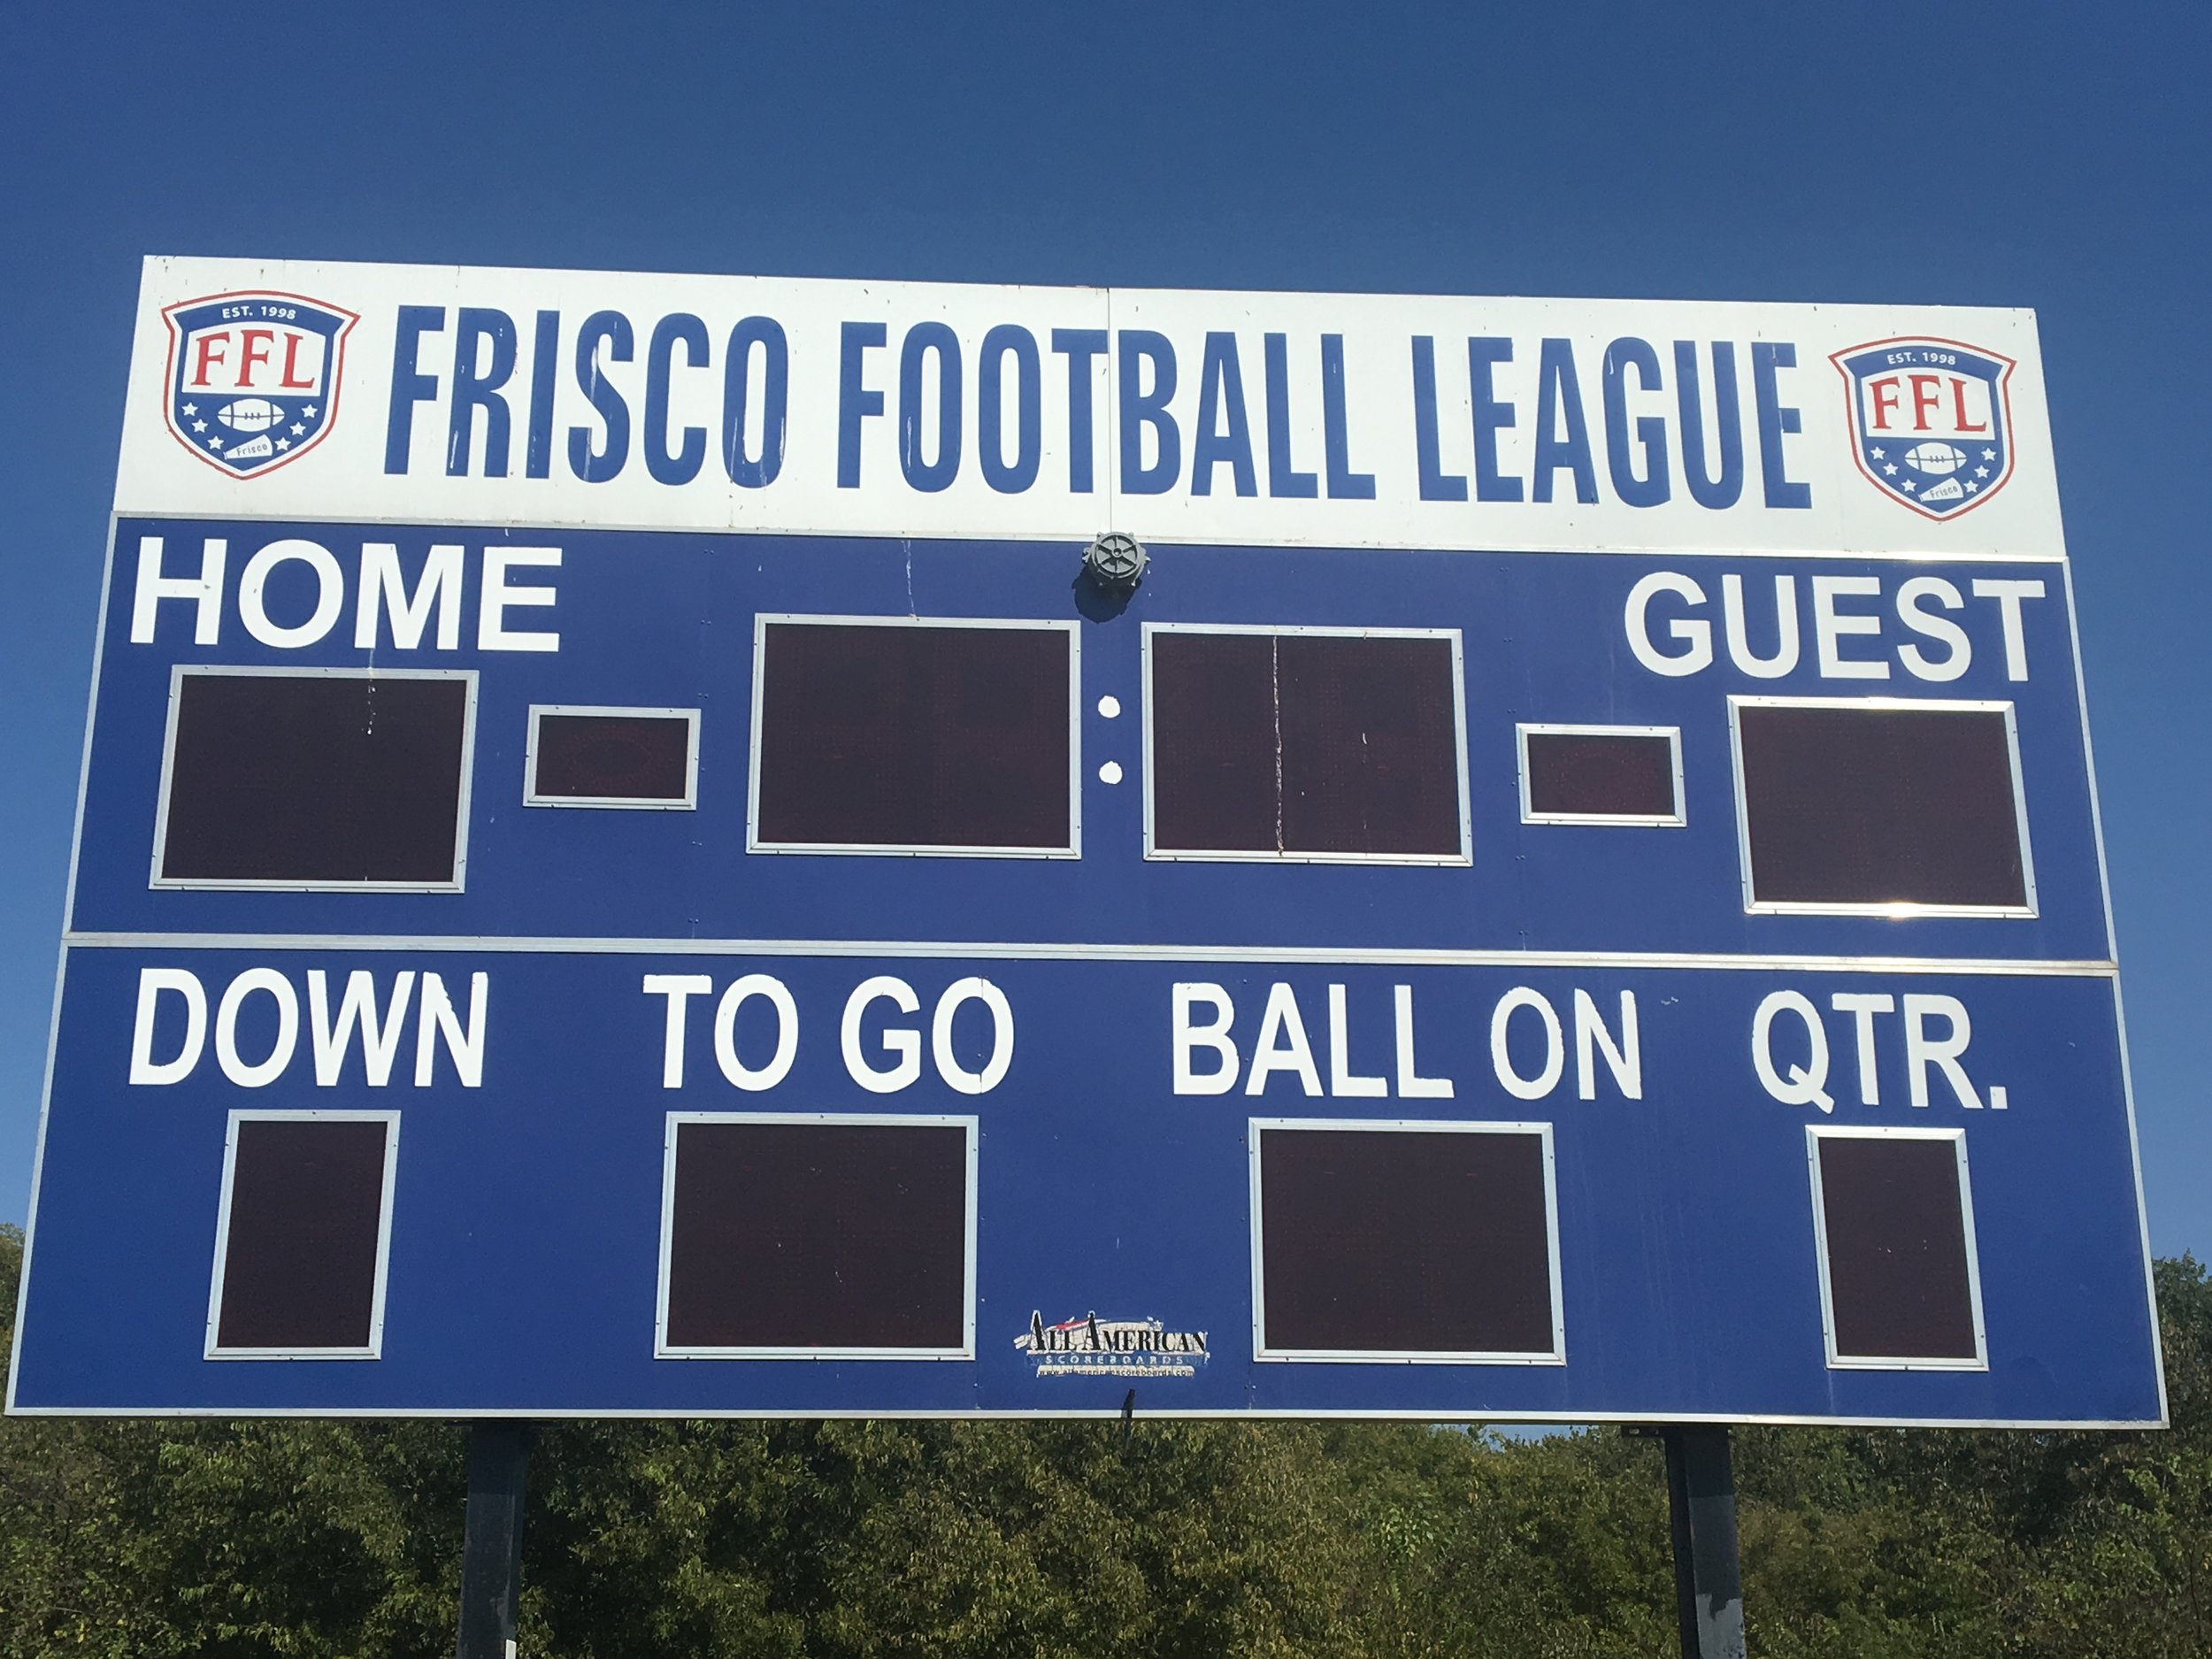 The FFL is the youth football league in Frisco, TX.